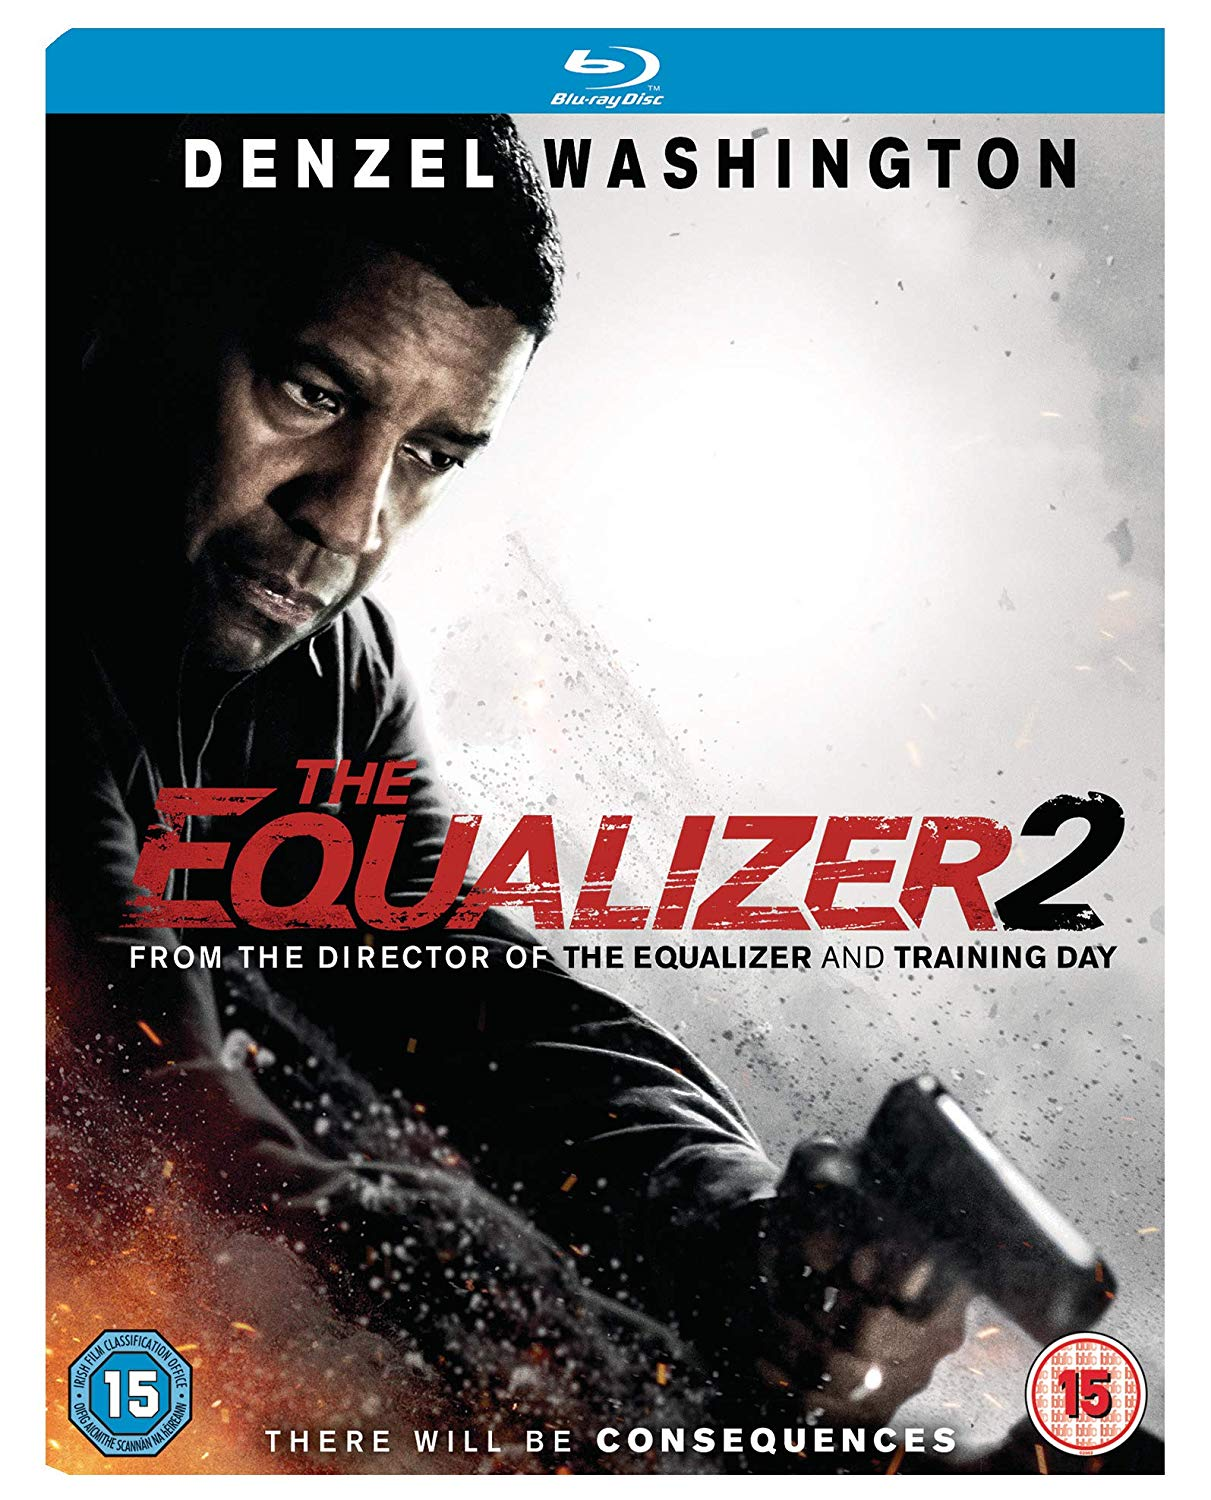 The Equalizer 2 - Richard Lindheim [BLU-RAY]